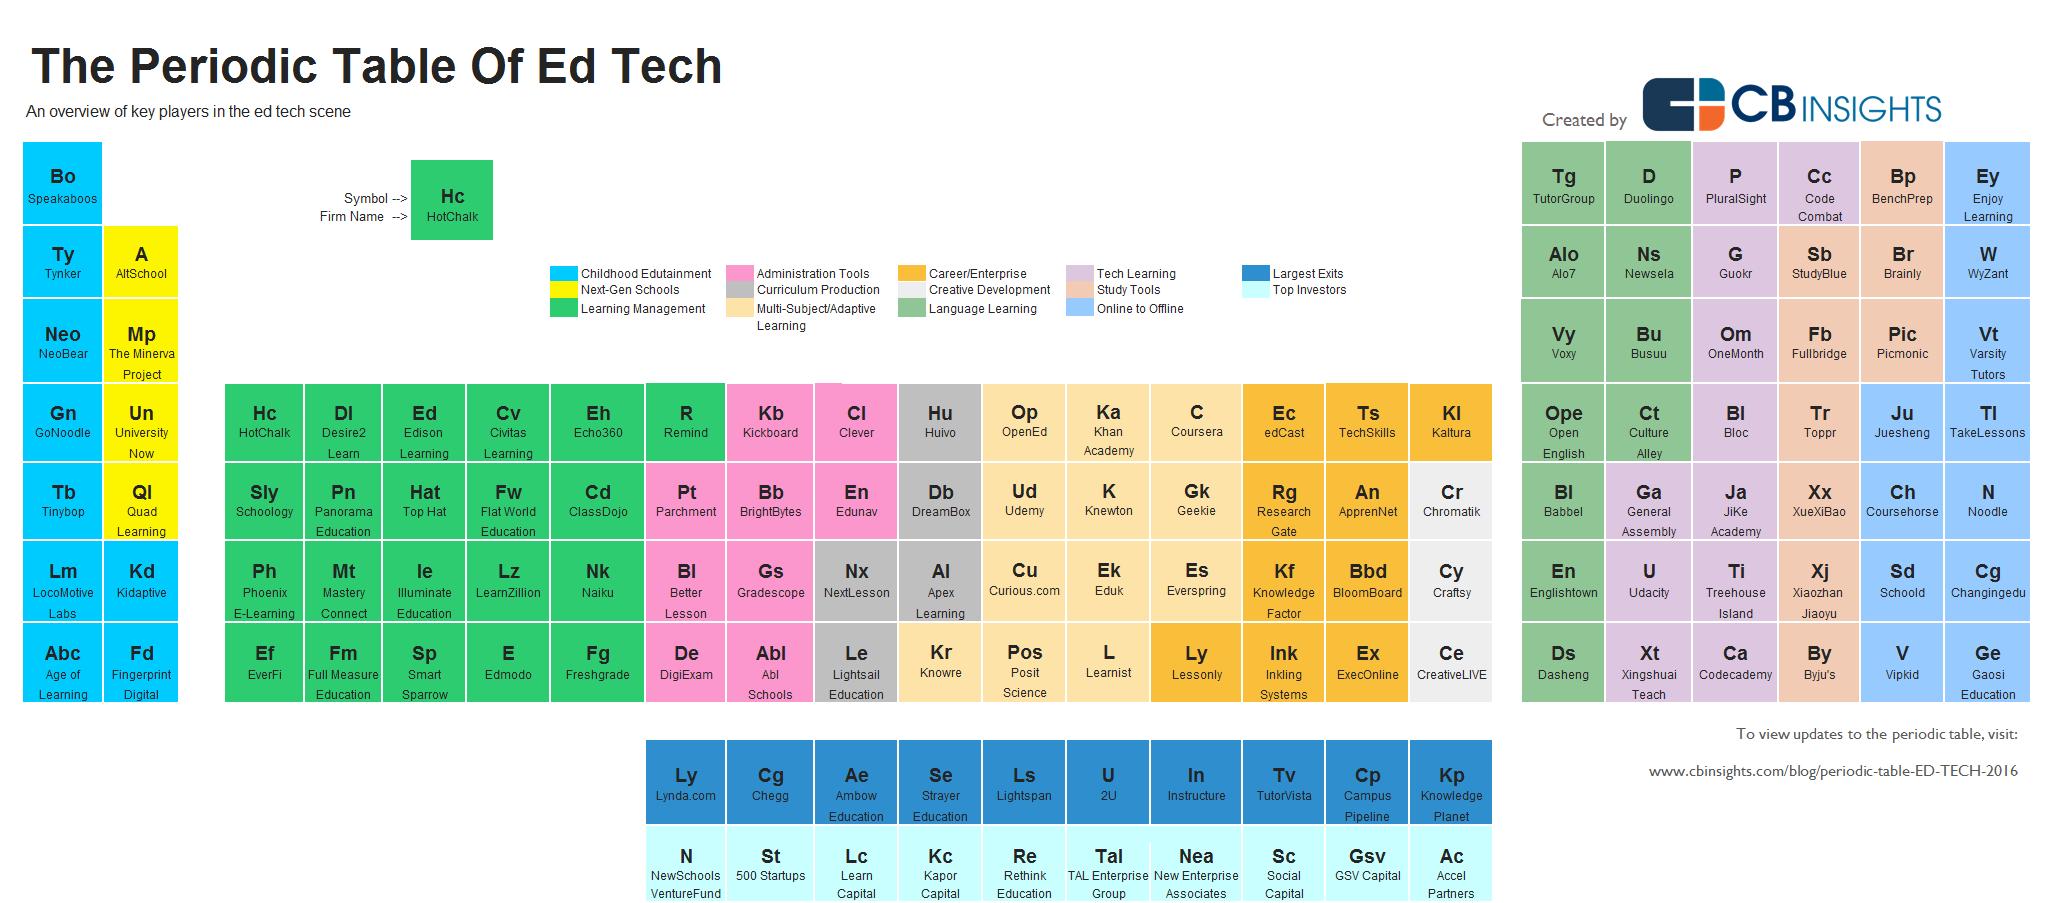 The Periodic Table Of Ed Tech